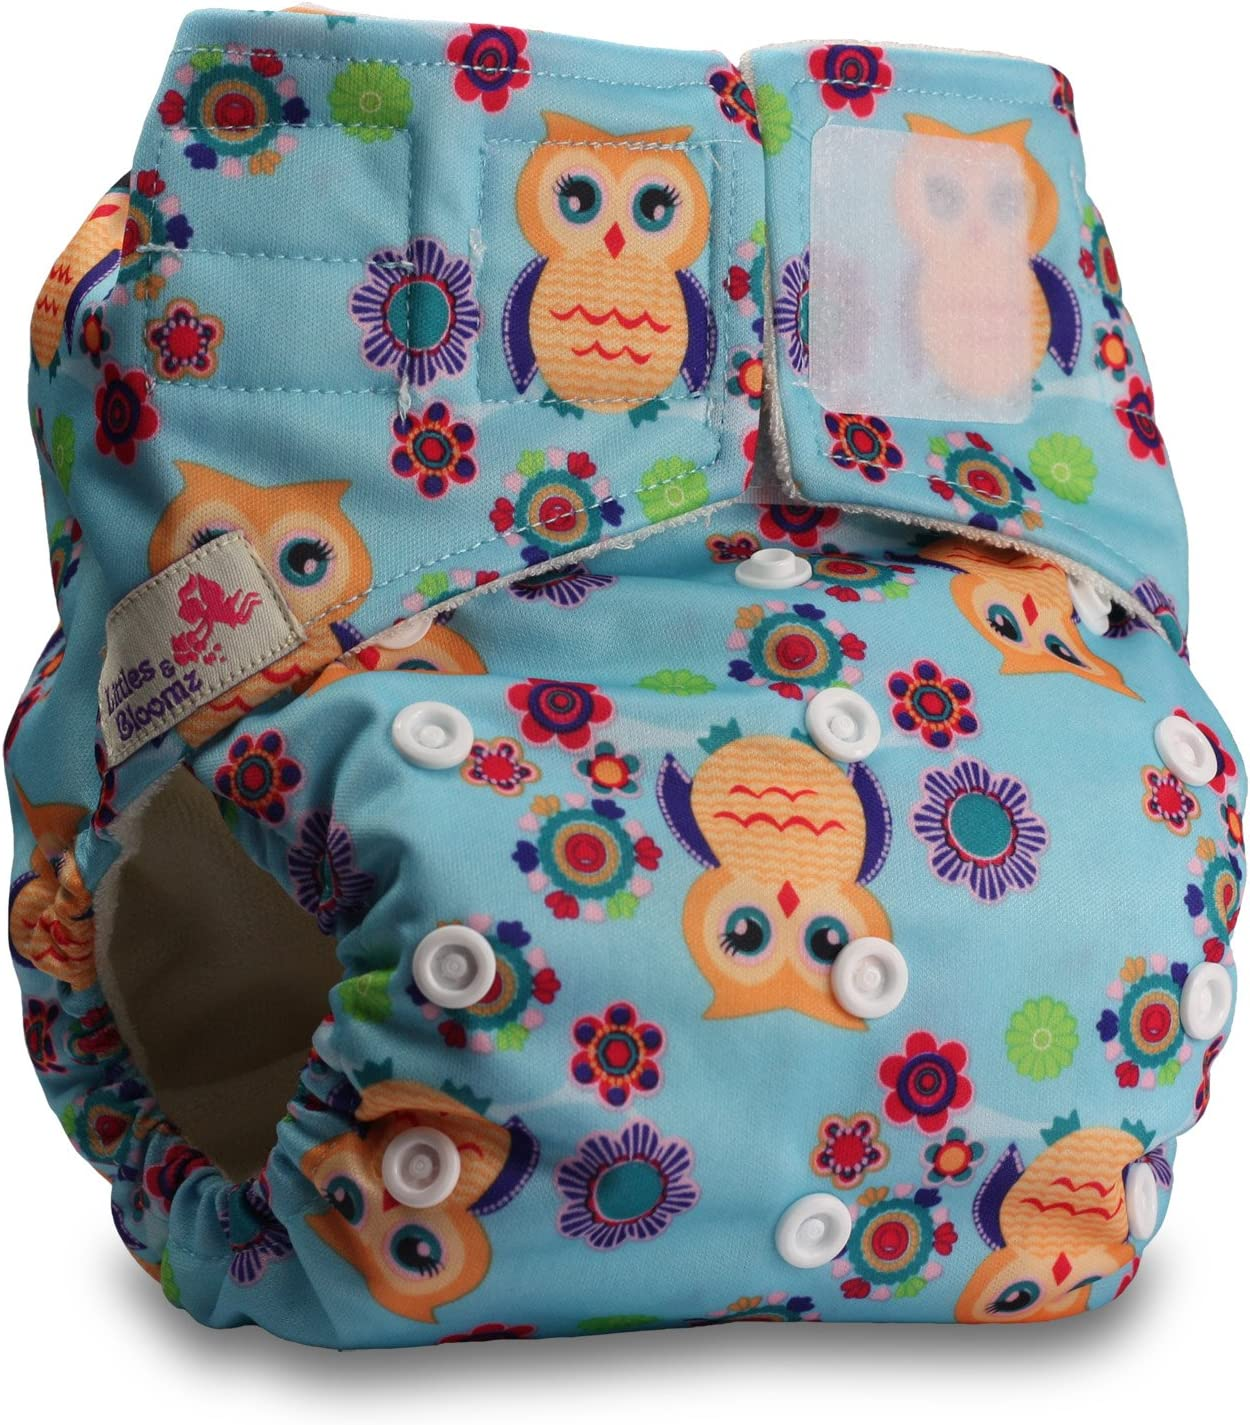 Pattern 52 Fastener: Hook-Loop Baby Cloth Washable Reusable Nappy Pocket Diaper Bamboo with 2 Microfibre Inserts Littles /& Bloomz